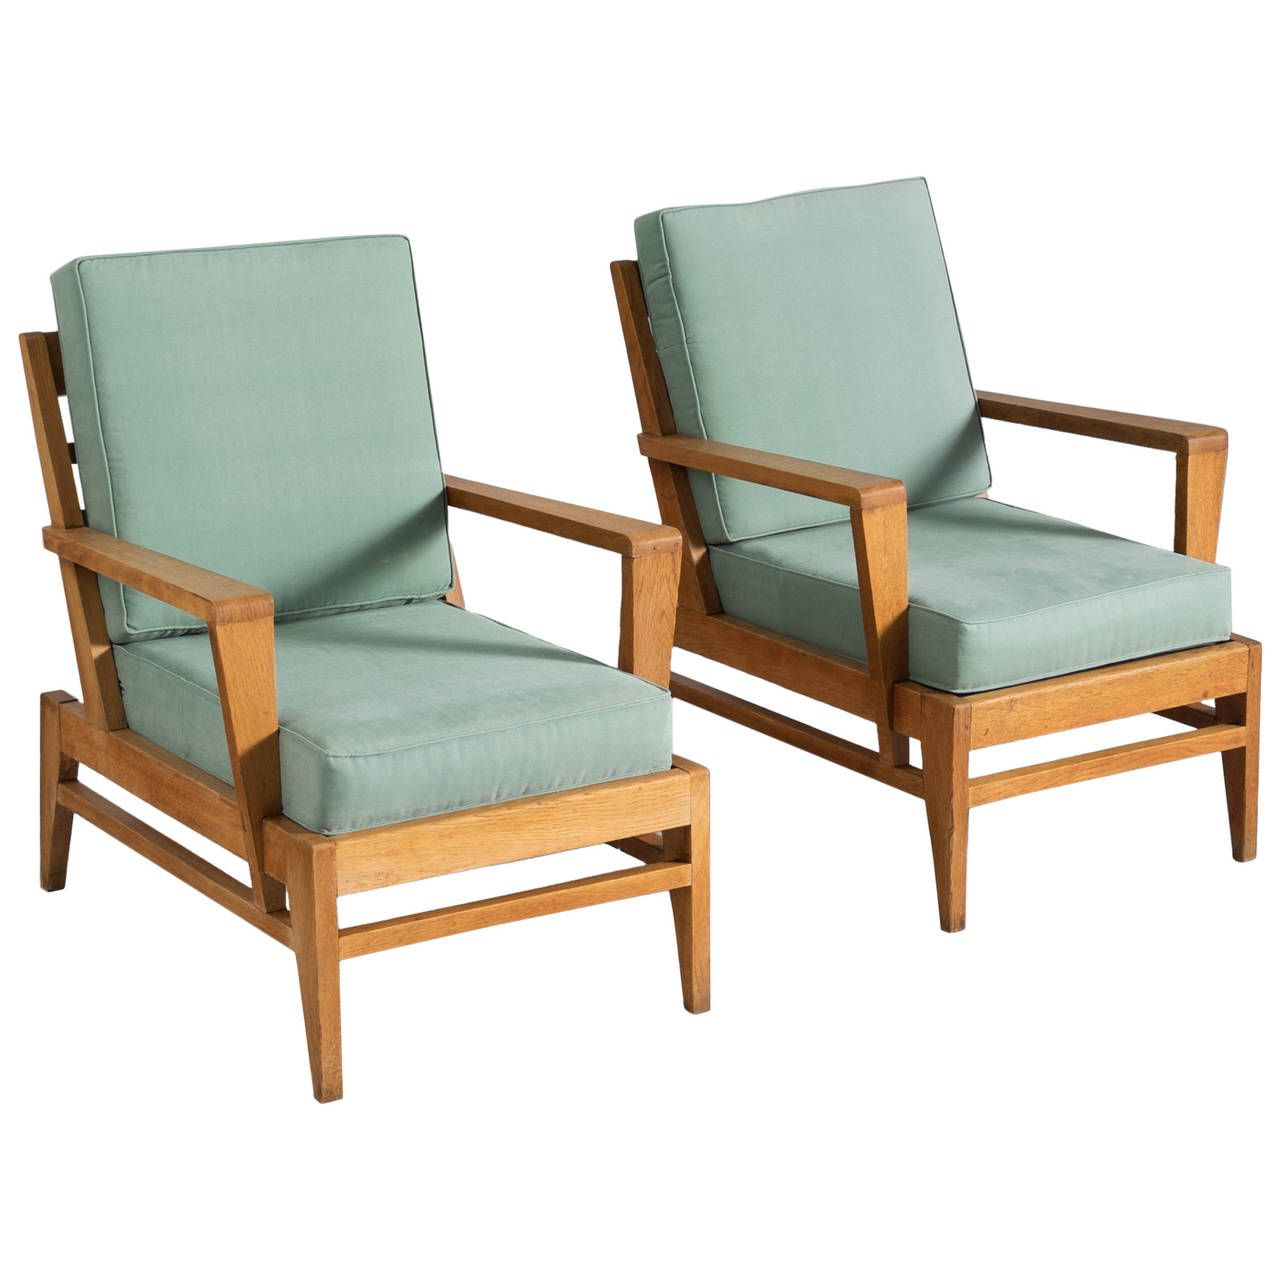 Rene Gabriel Lounge Chairs In Solid Oak Chairs Pinterest Chair